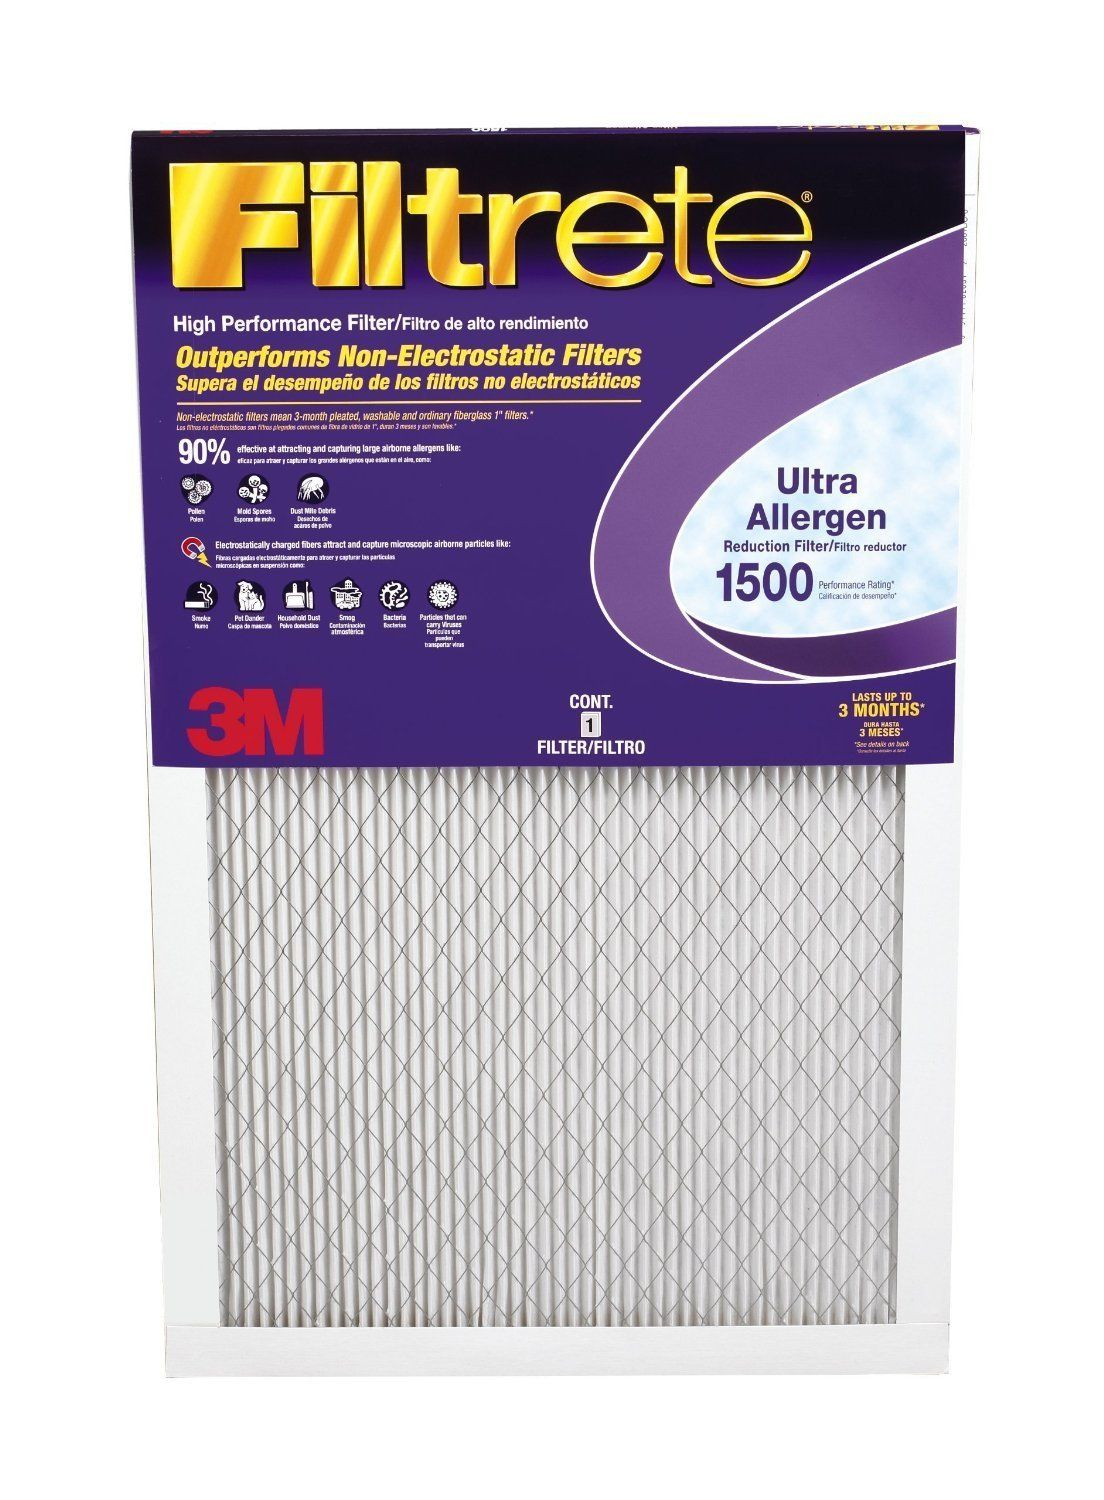 Filtrete Healthy Living Filters in the Gold Box! Furnace